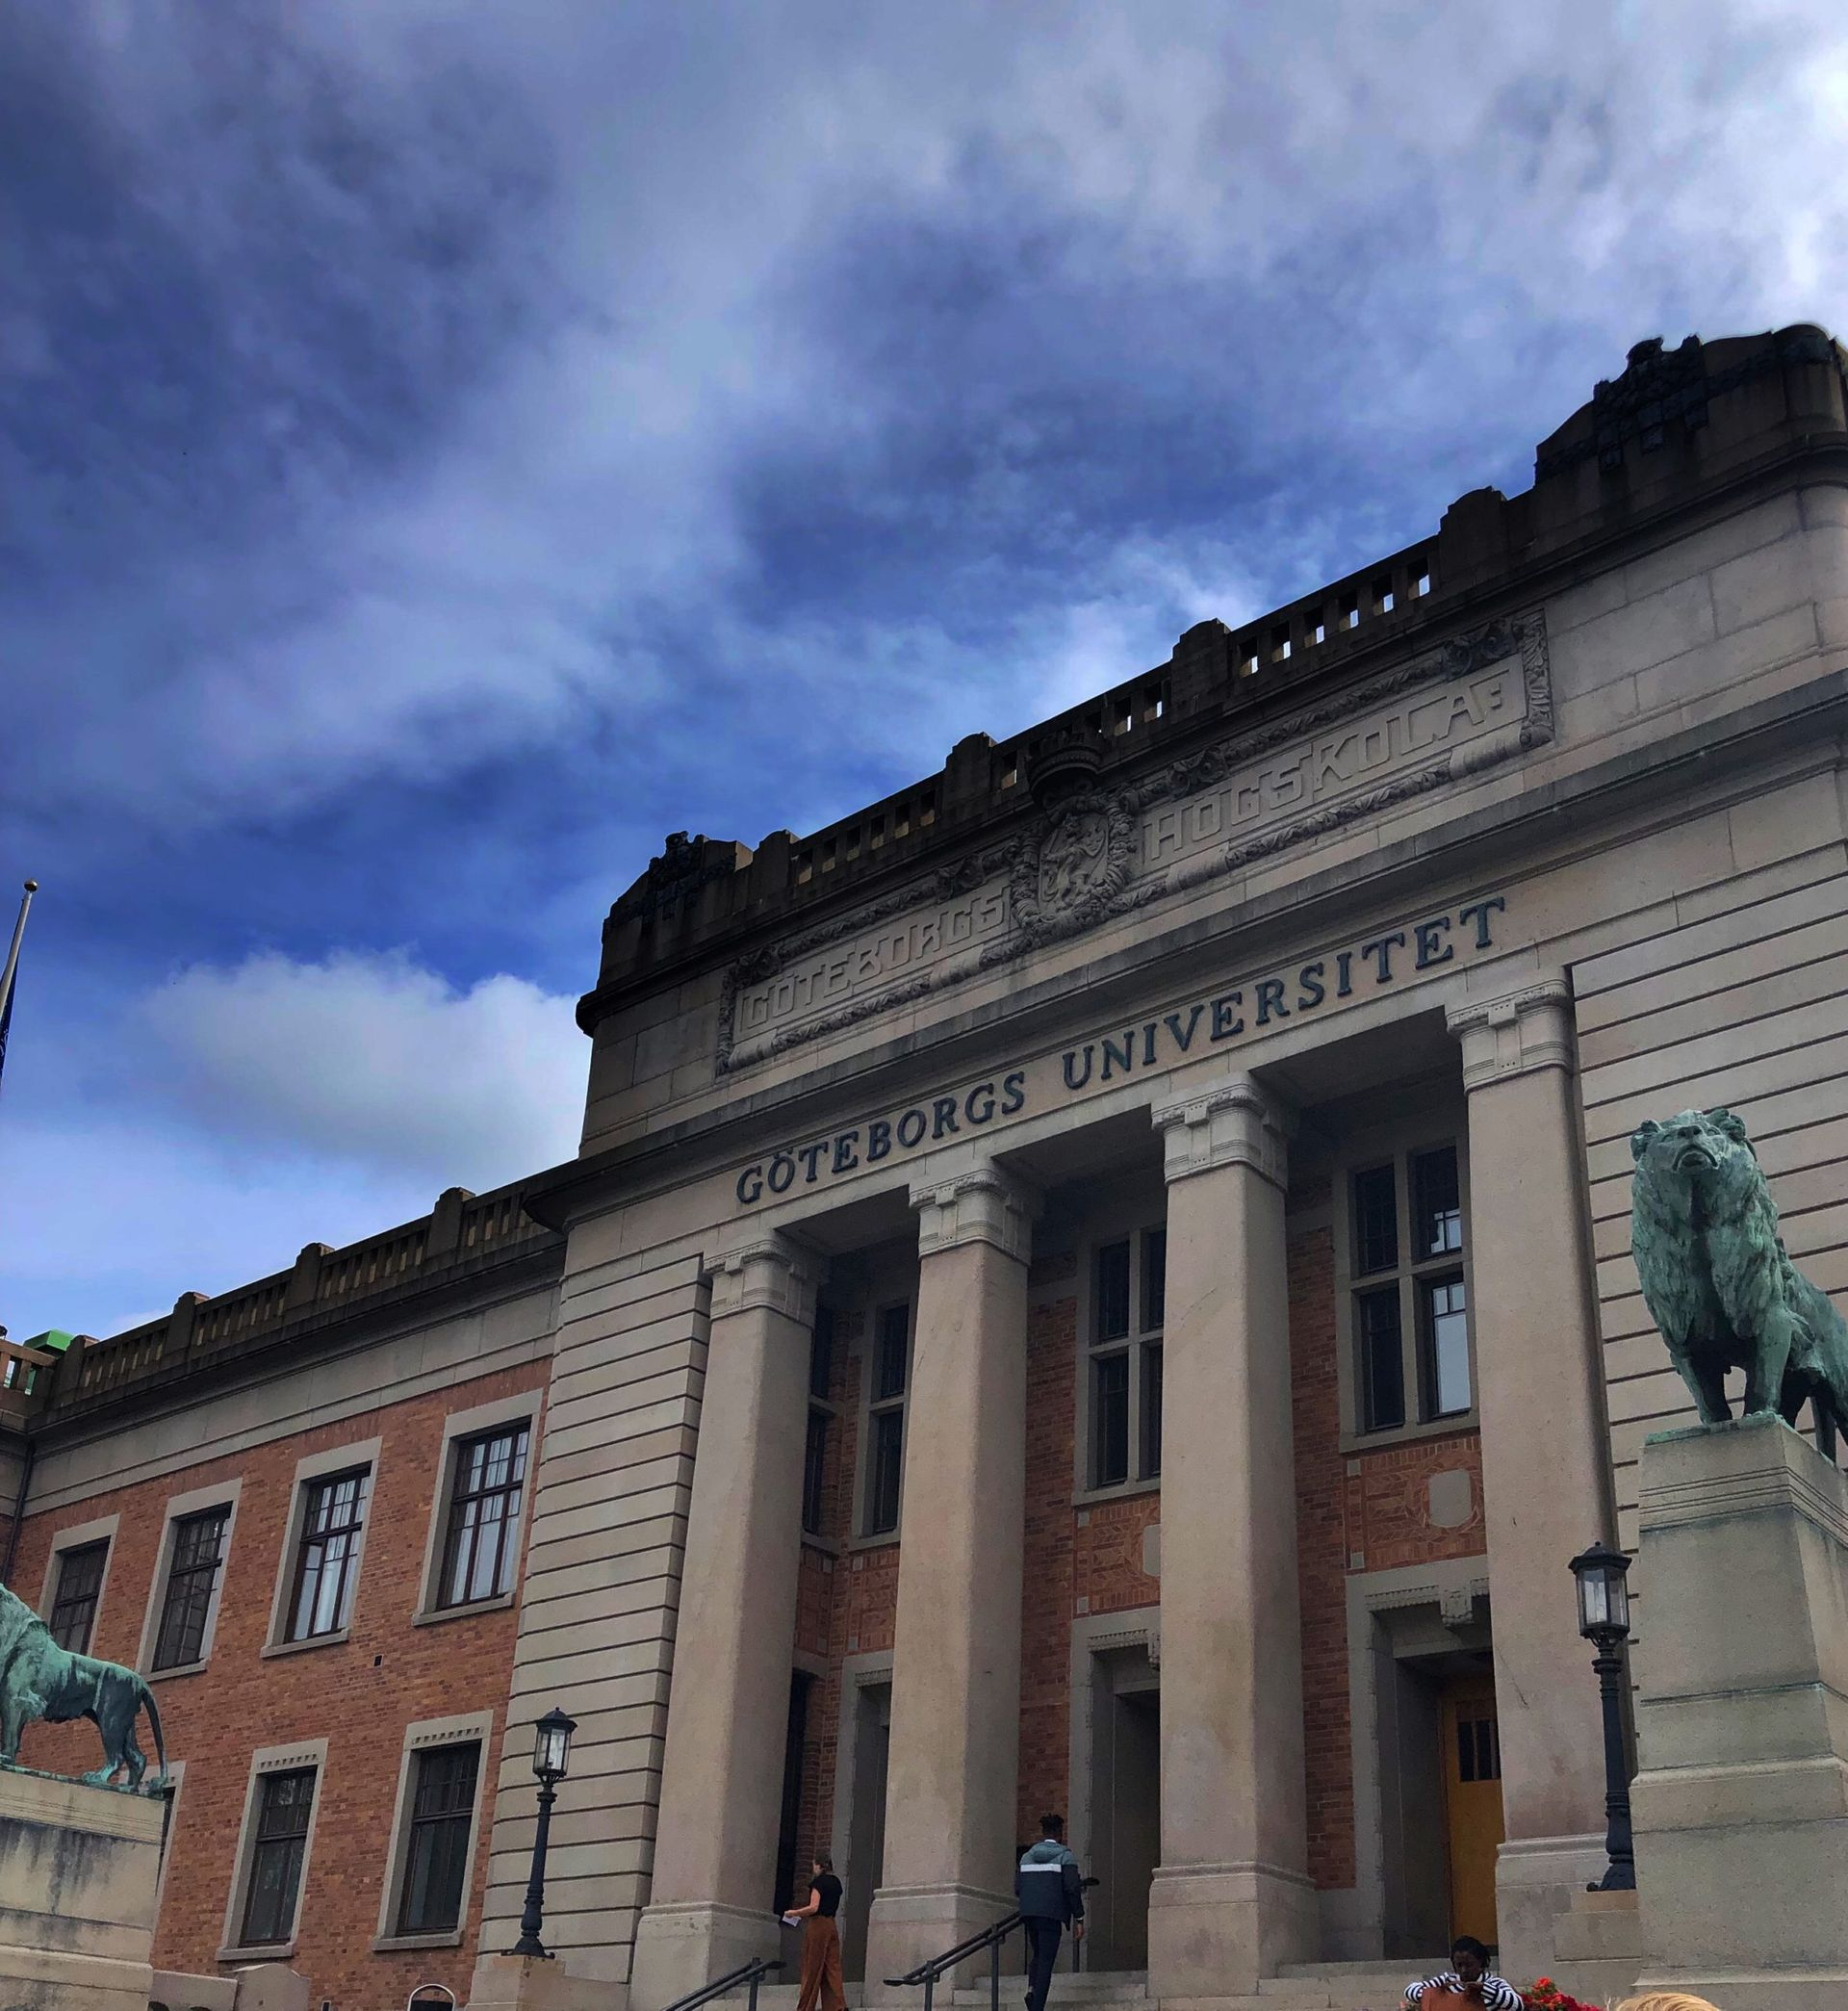 The University of Gothenburg's main building.